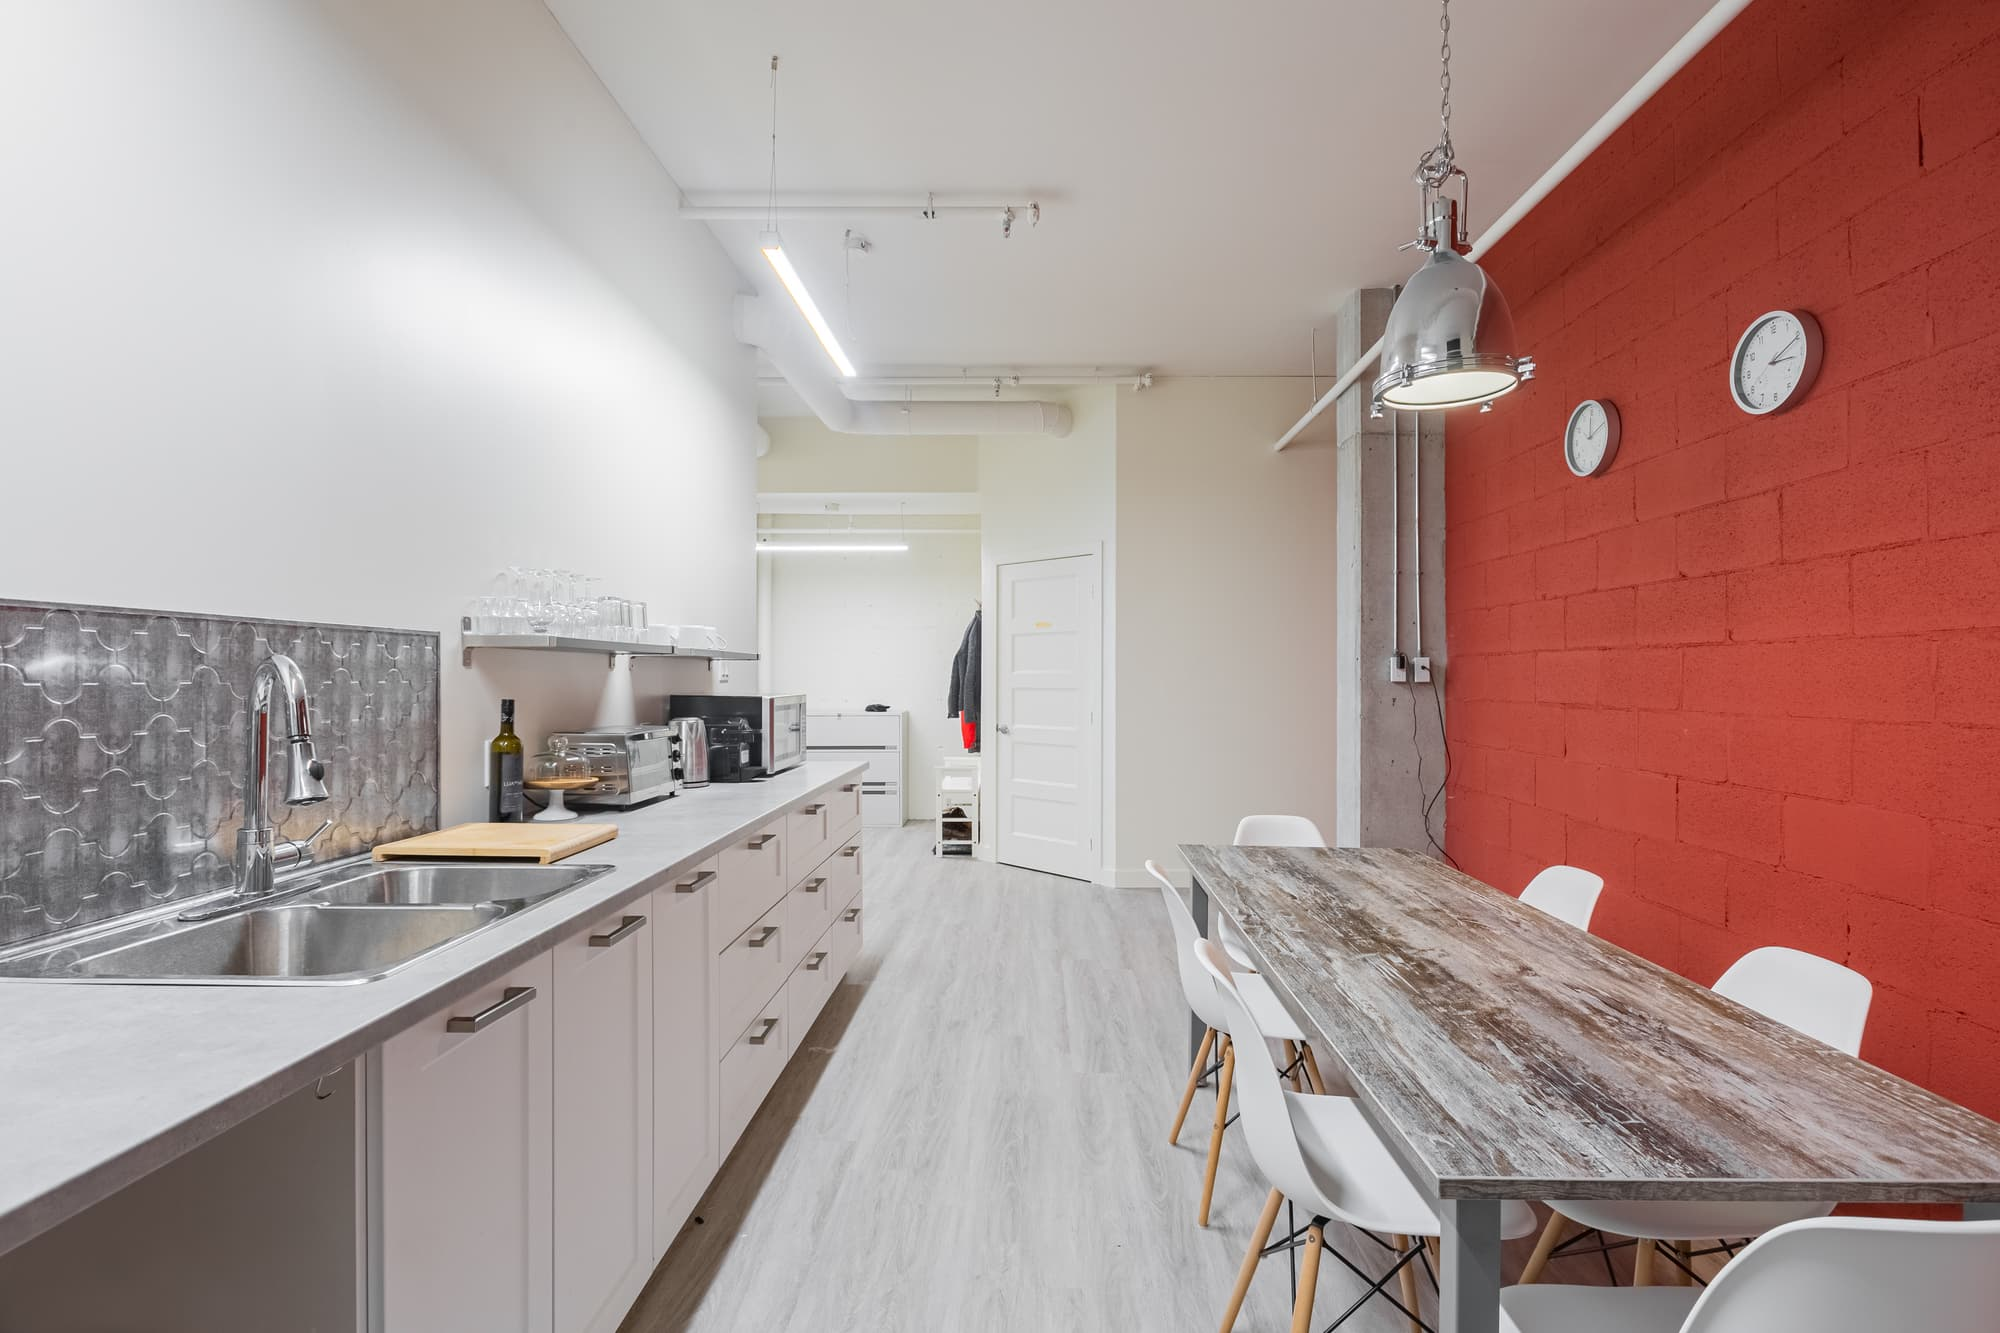 office kitchen with red wall, portholes, counter, etc.